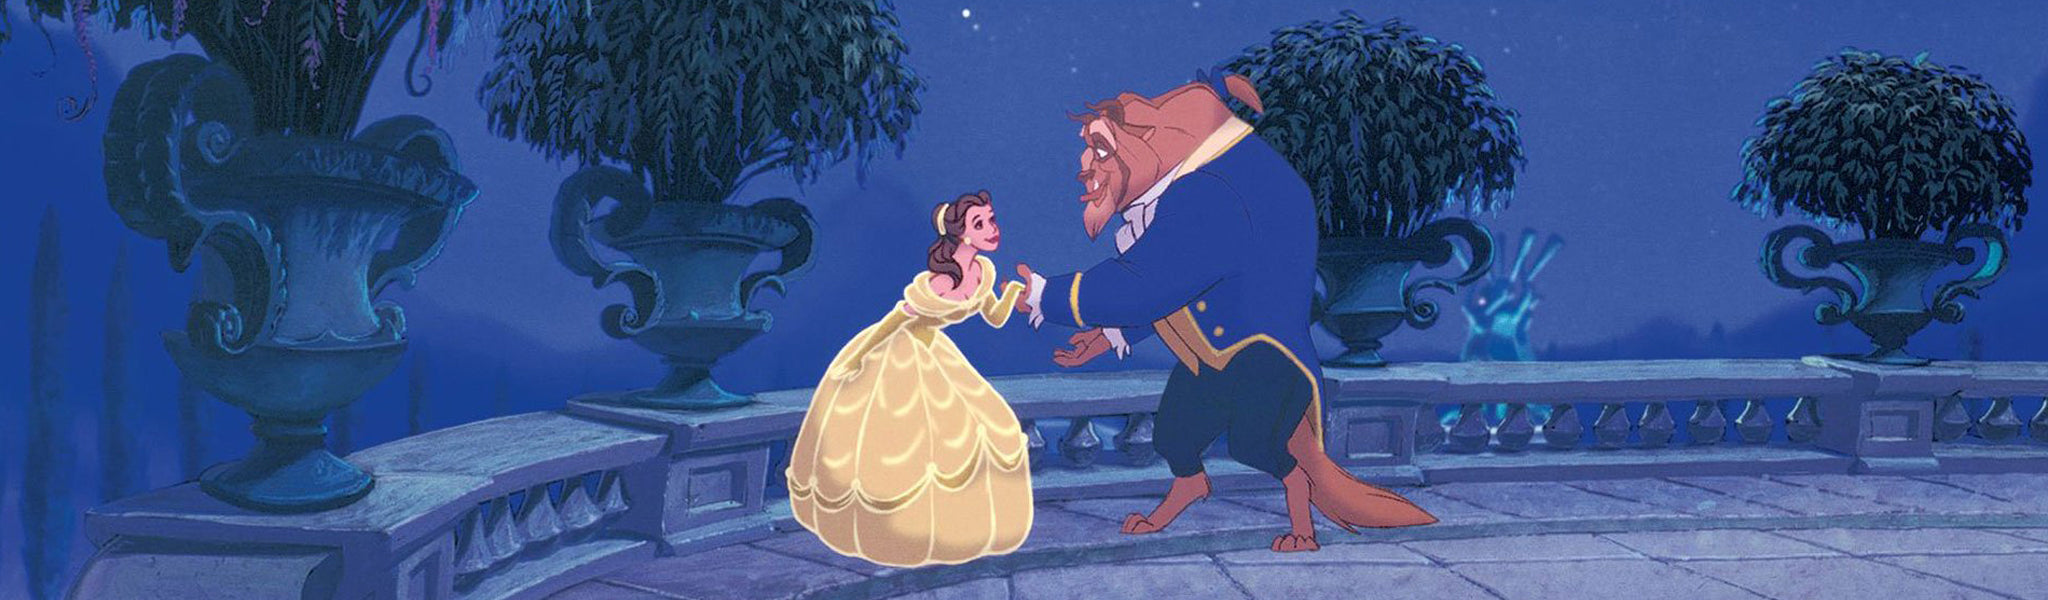 Belle- Beauty & the Beast